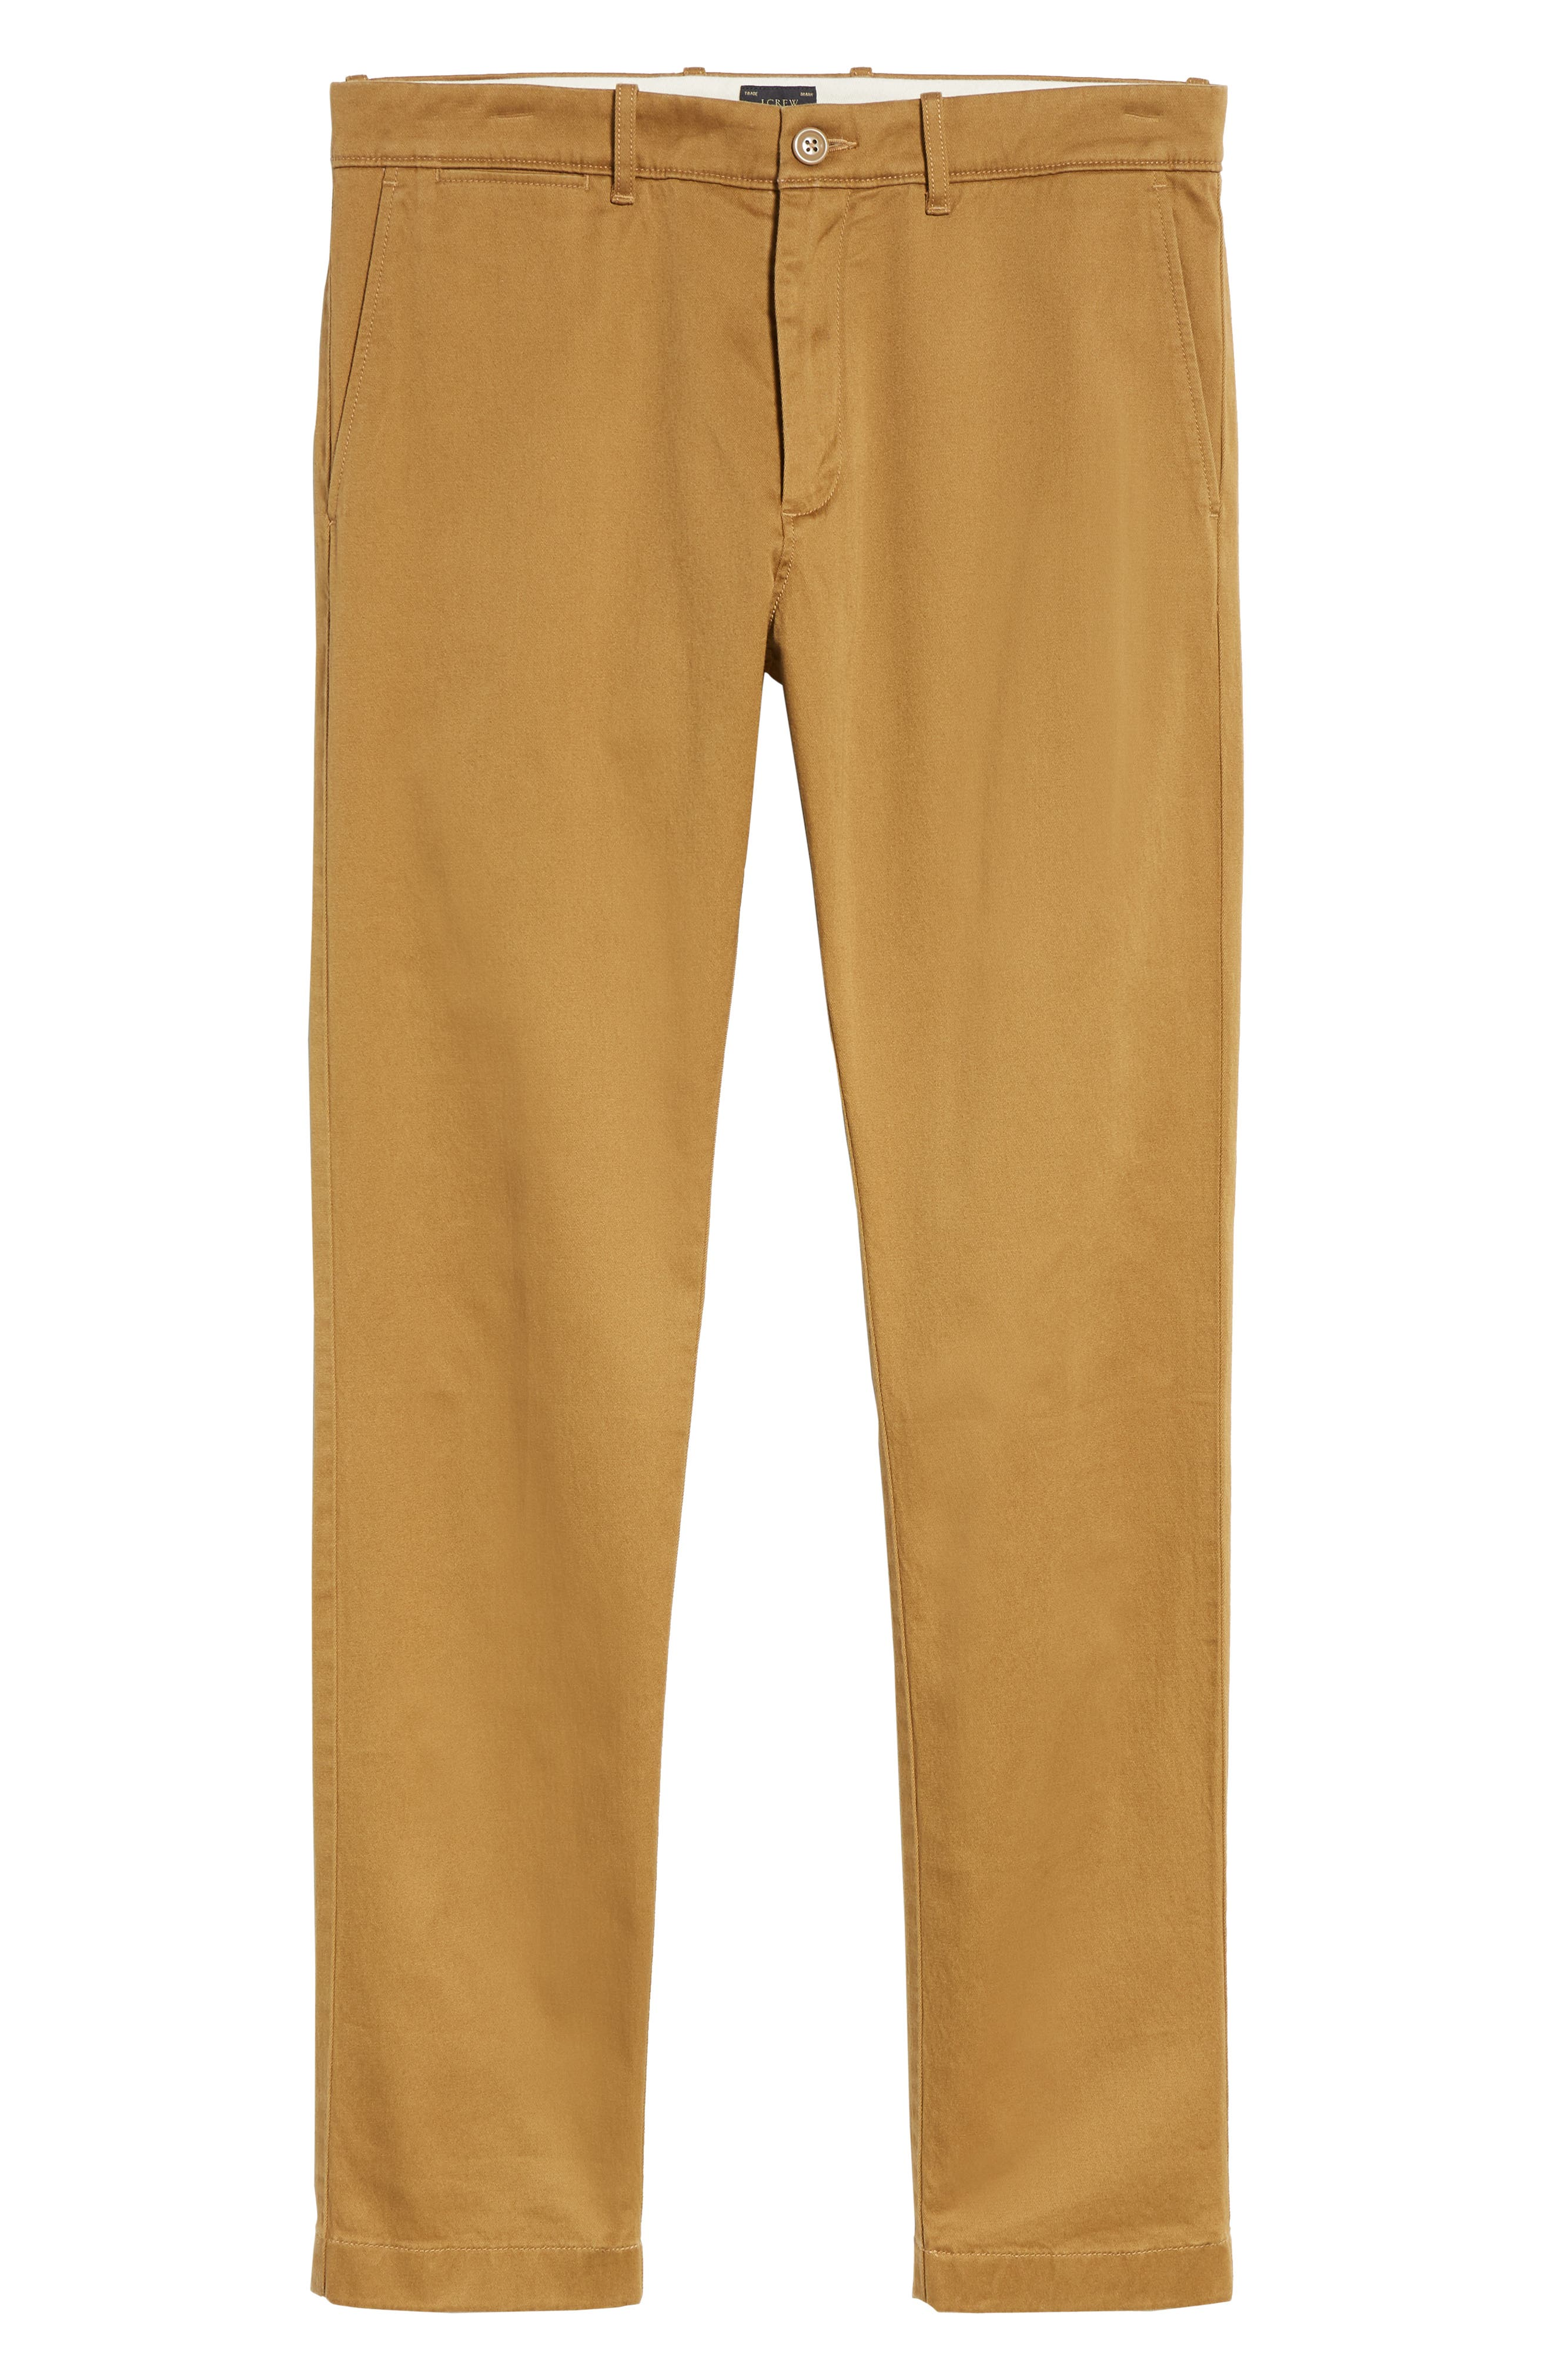 484 Slim Fit Stretch Chino Pants,                             Alternate thumbnail 46, color,